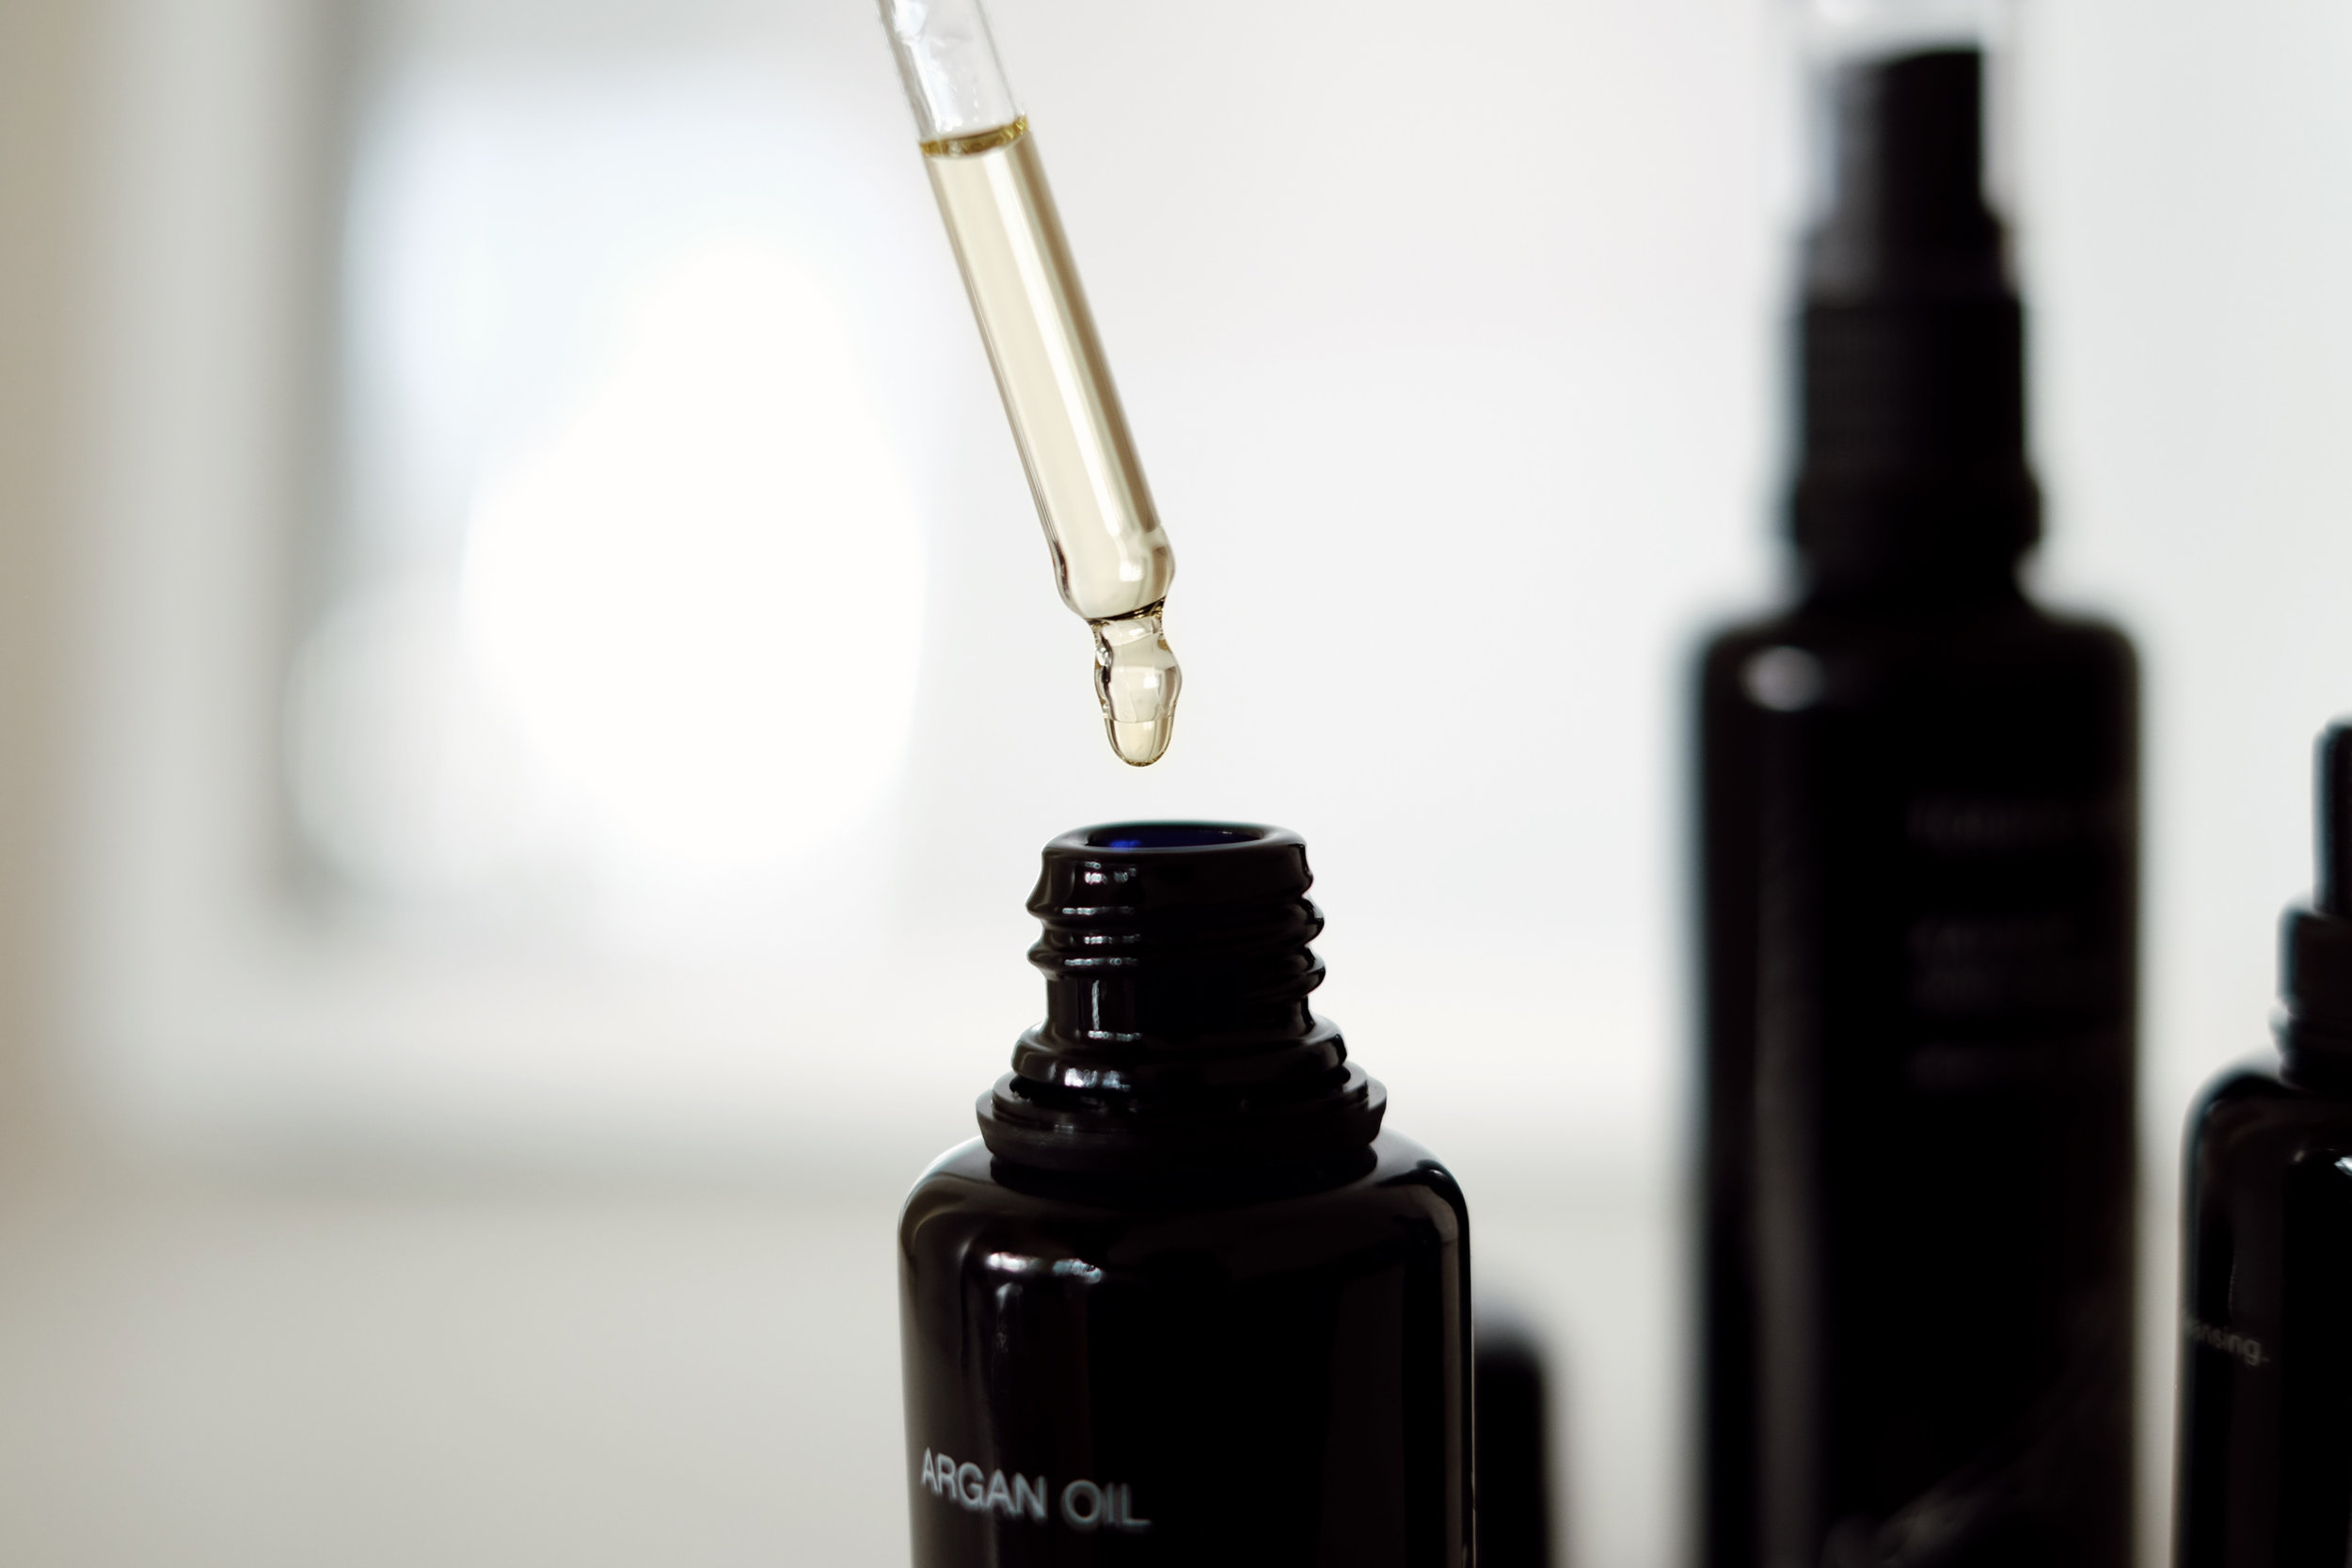 KAHINA GIVING BEAUTY    Argan Oil   (More   here  ) During the day I blend a few drops with my daily moisturizer for extra hydration and at night I usually wear it alone. It's also great for hair, cuticles/nails and lips.